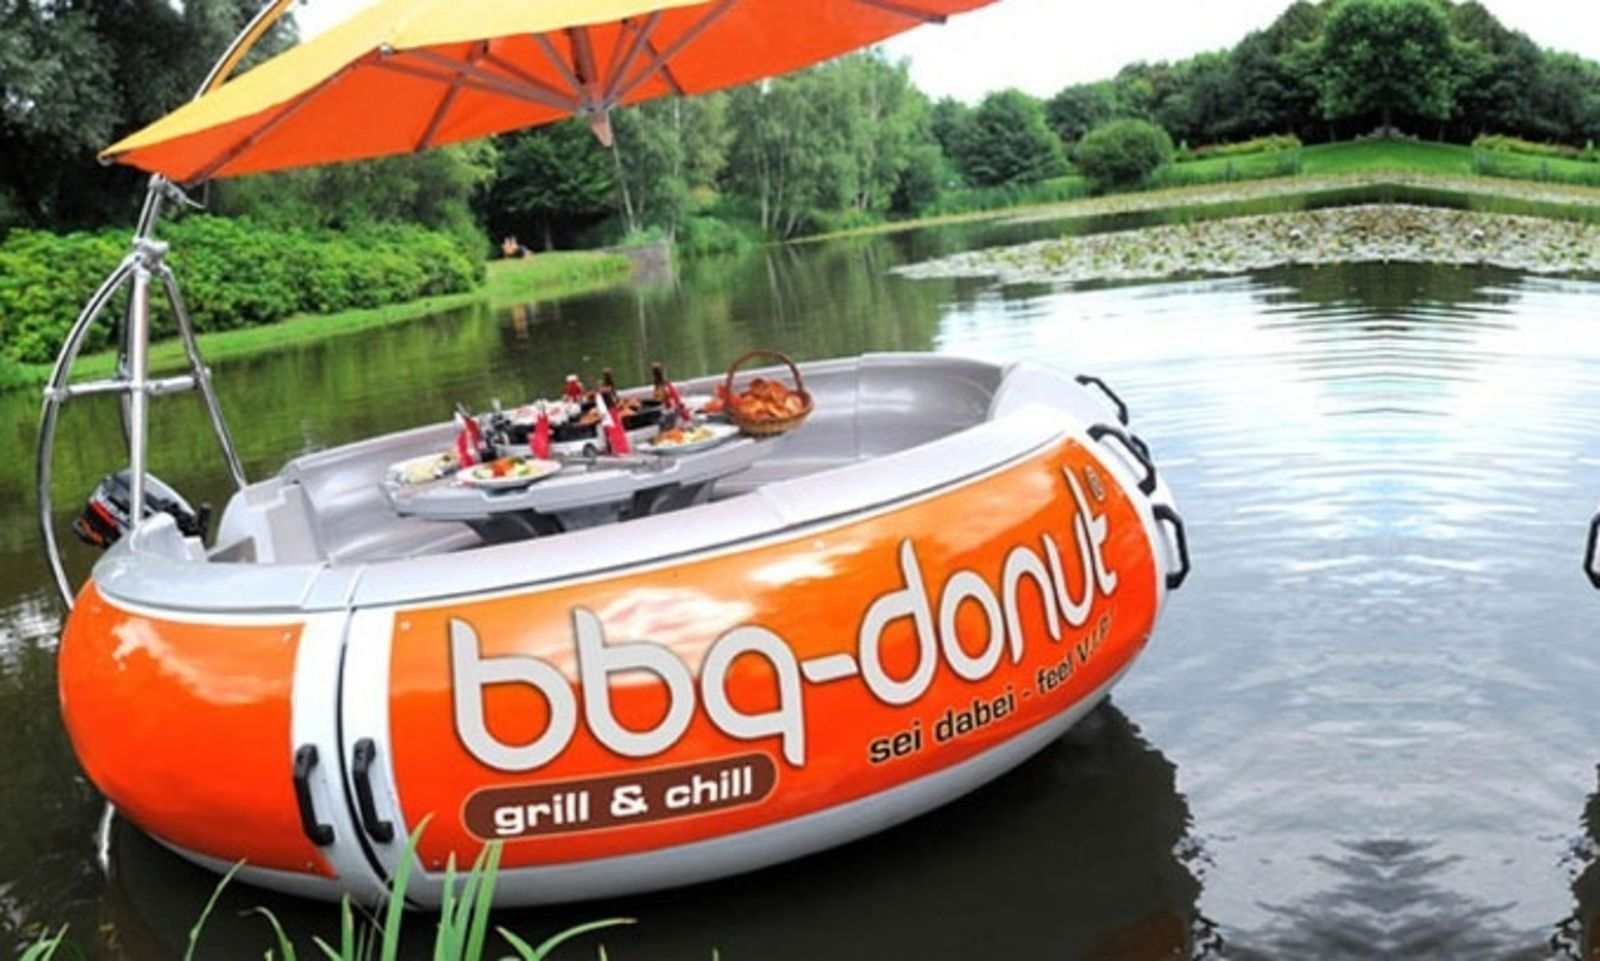 Bbq Donut Boat Rental In Cape Coral In Cape Coral Not All